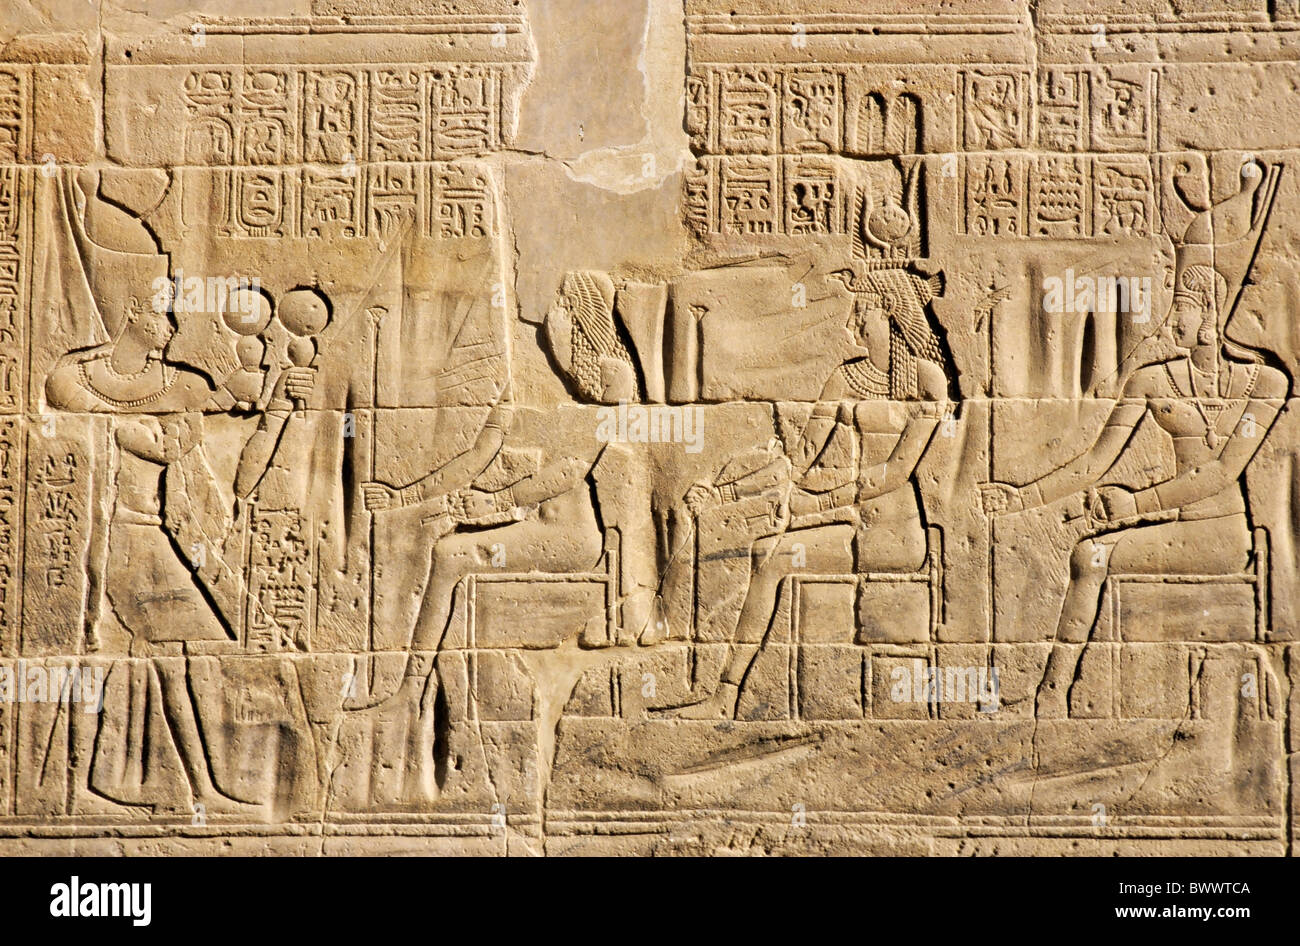 Bas-relief at the ancient temple for Isis on the island of Philae on the Nile river, Egypt. - Stock Image